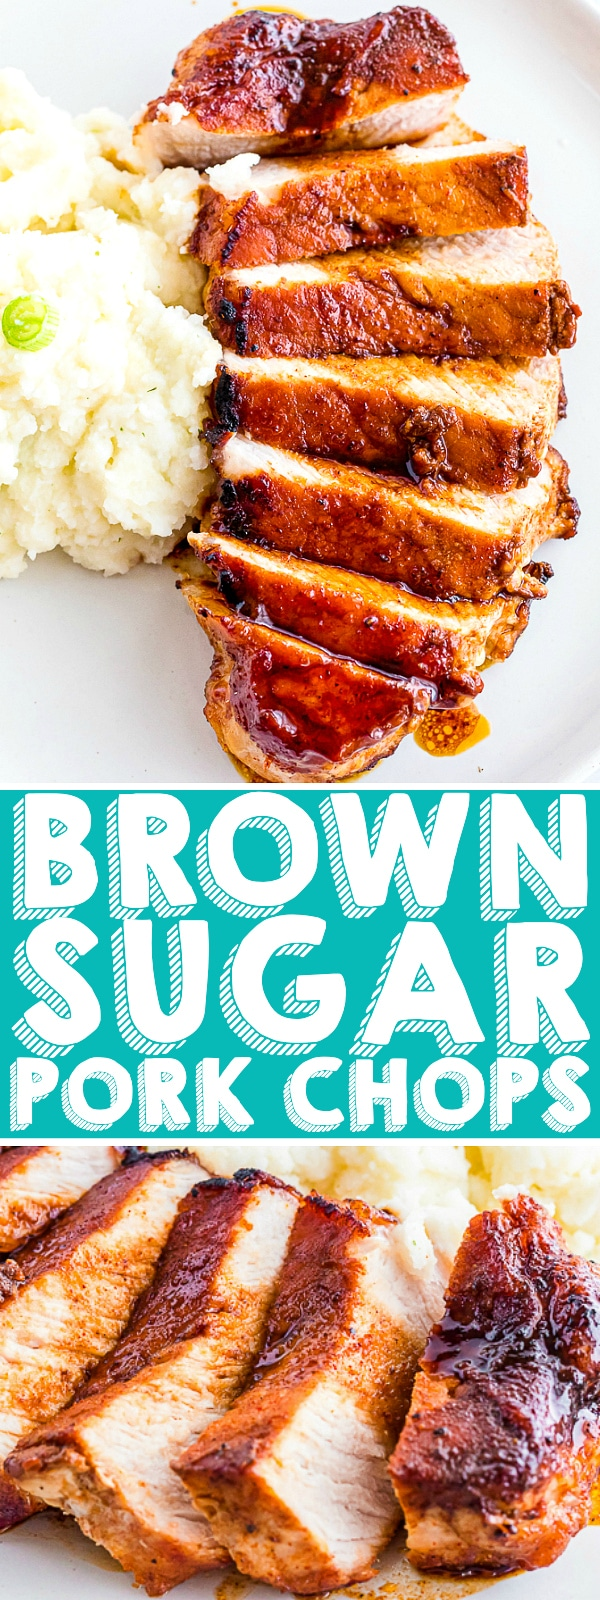 These easy Brown Sugar Pork Chops have a delicious sweet spice rub that gives your pork chops amazing flavor! With instructions for cooking on the stovetop, in the oven and on the grill, this will quickly become your go-to pork chop recipe!| THE LOVE NERDS #porkchoprecipe #easydinner #30minutemeal